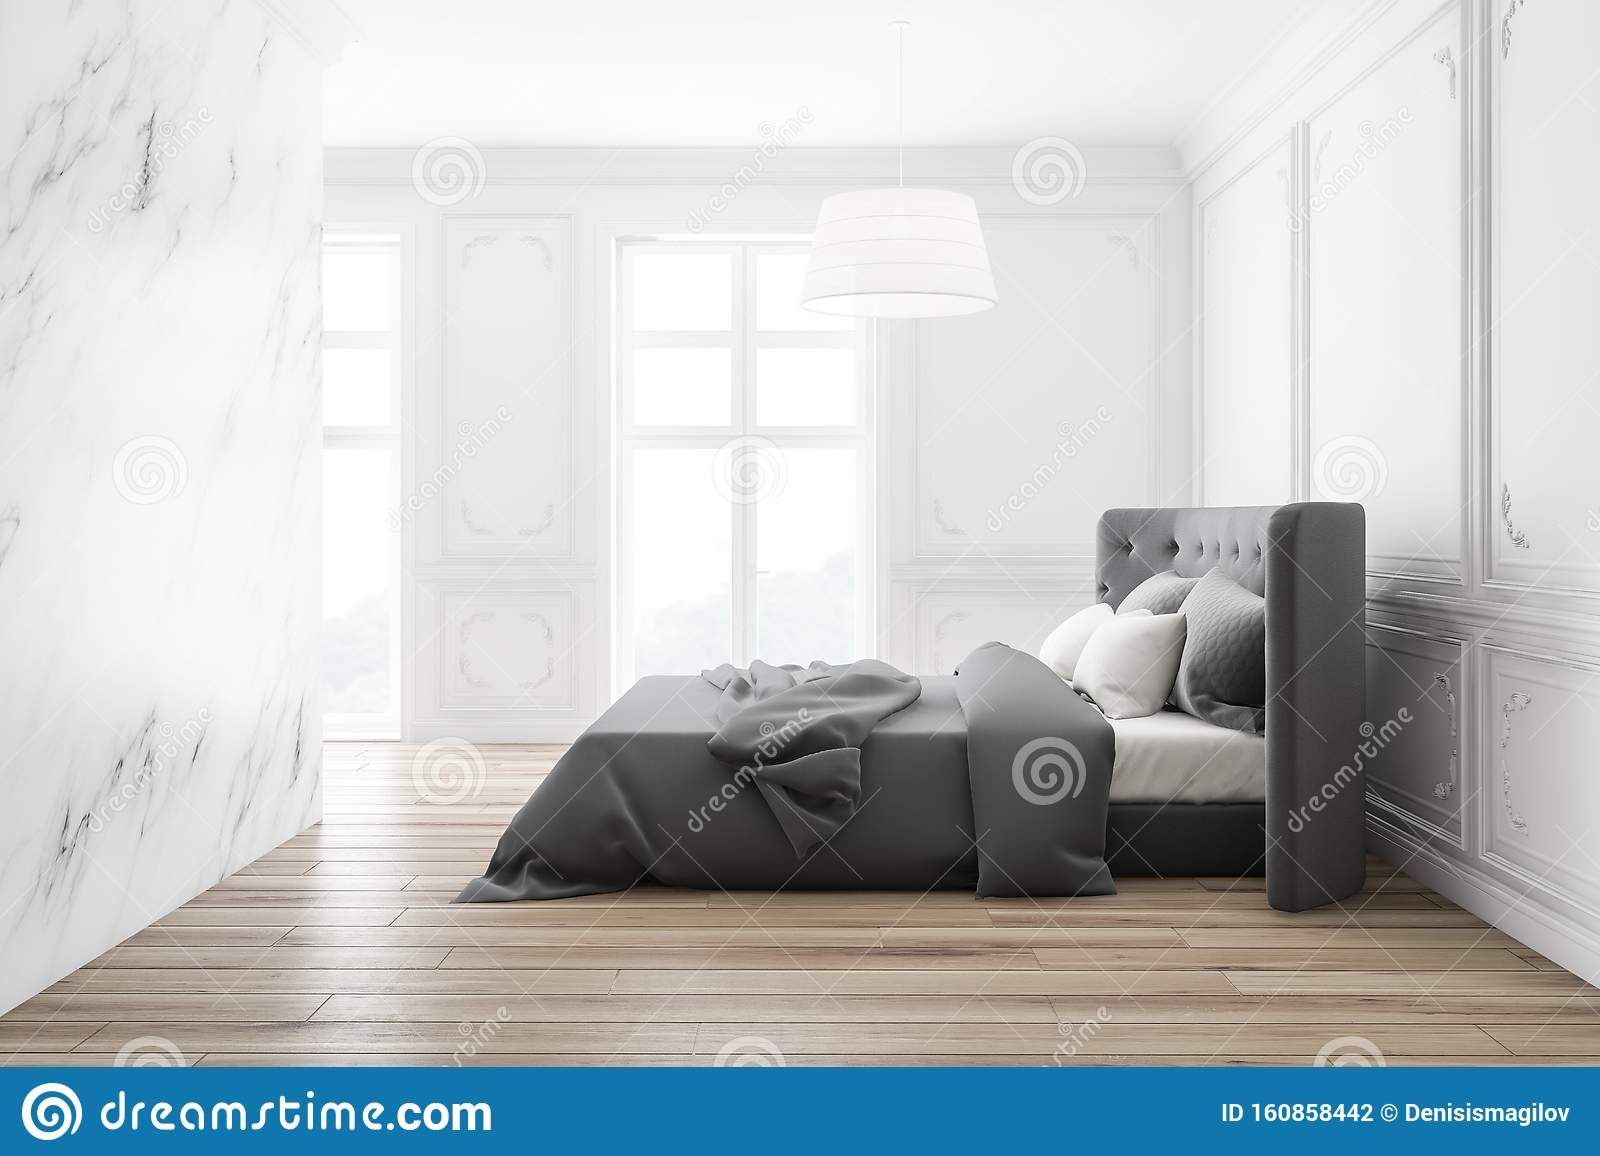 Modern White House Bedroom Marble Floor Stock Illustrations 247 Modern White House Bedroom Marble Floor Stock Illustrations Vectors Clipart Dreamstime